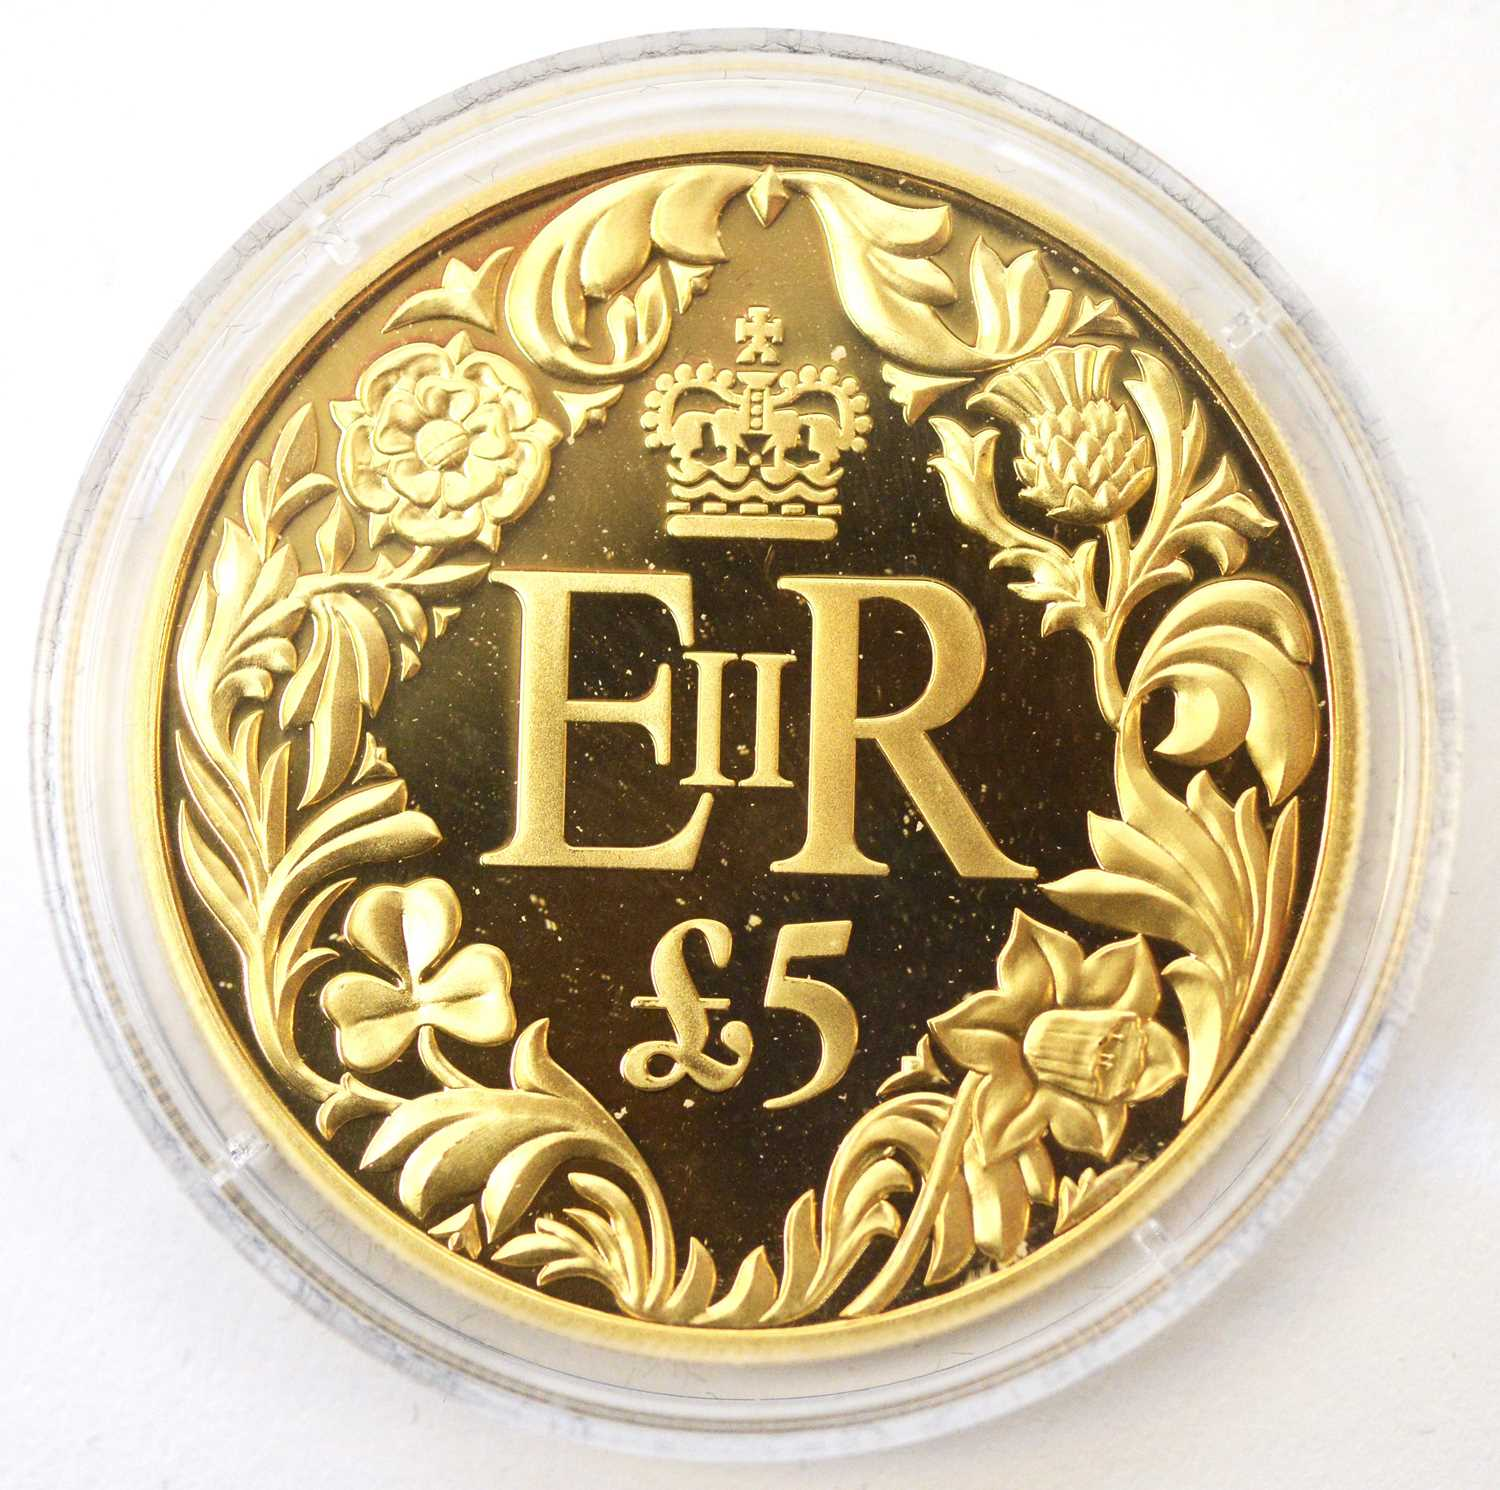 A Diamond Jubilee Guernsey £5 gold coin - Image 2 of 4